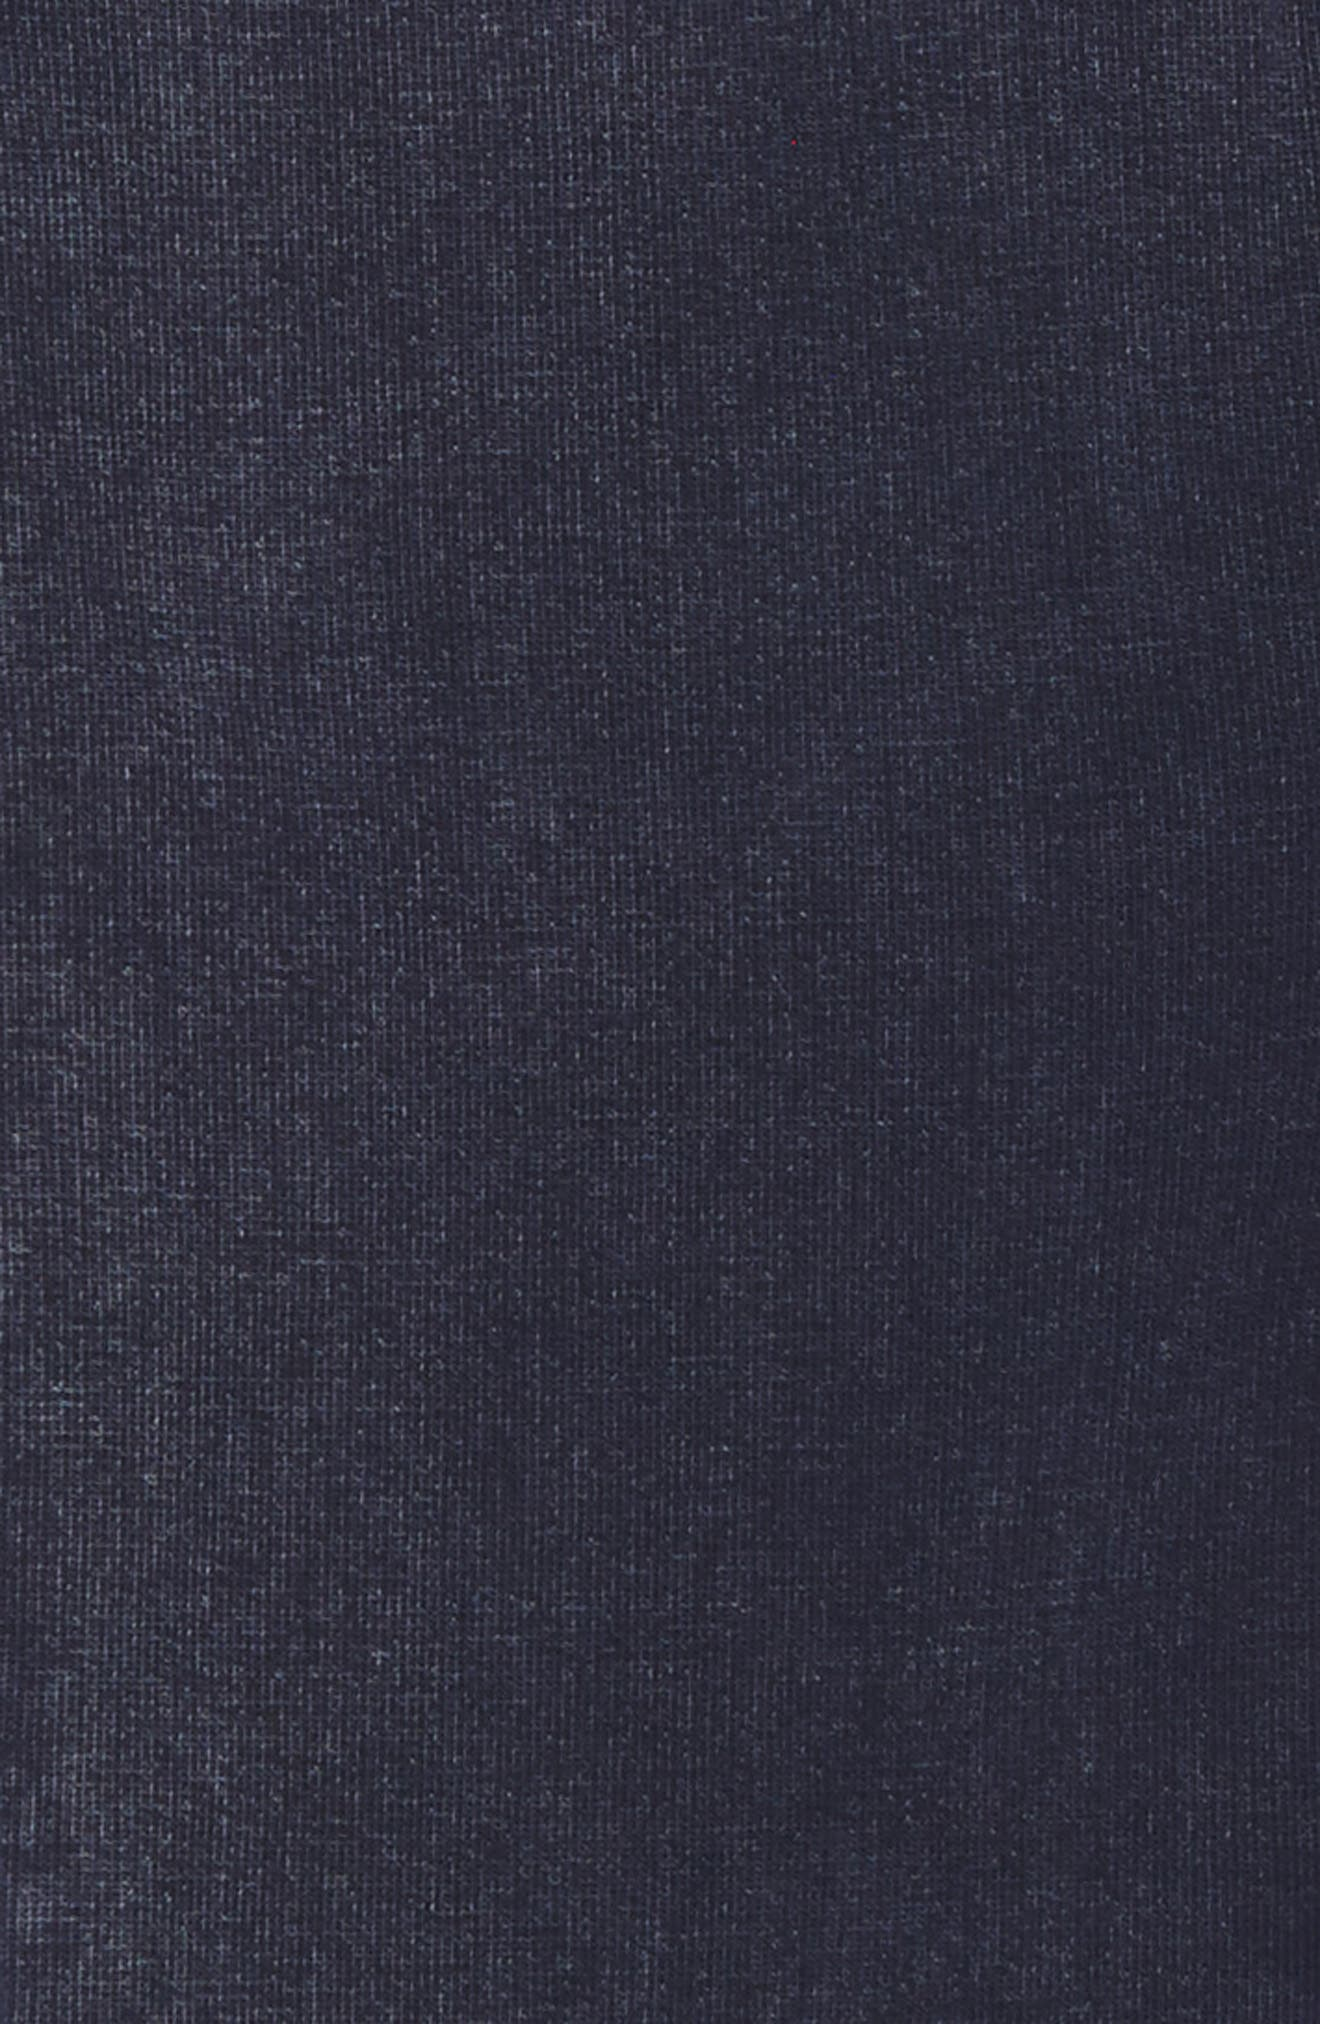 TUCKER + TATE,                             Denim Jeggings,                             Alternate thumbnail 3, color,                             DARK INDIGO WASH